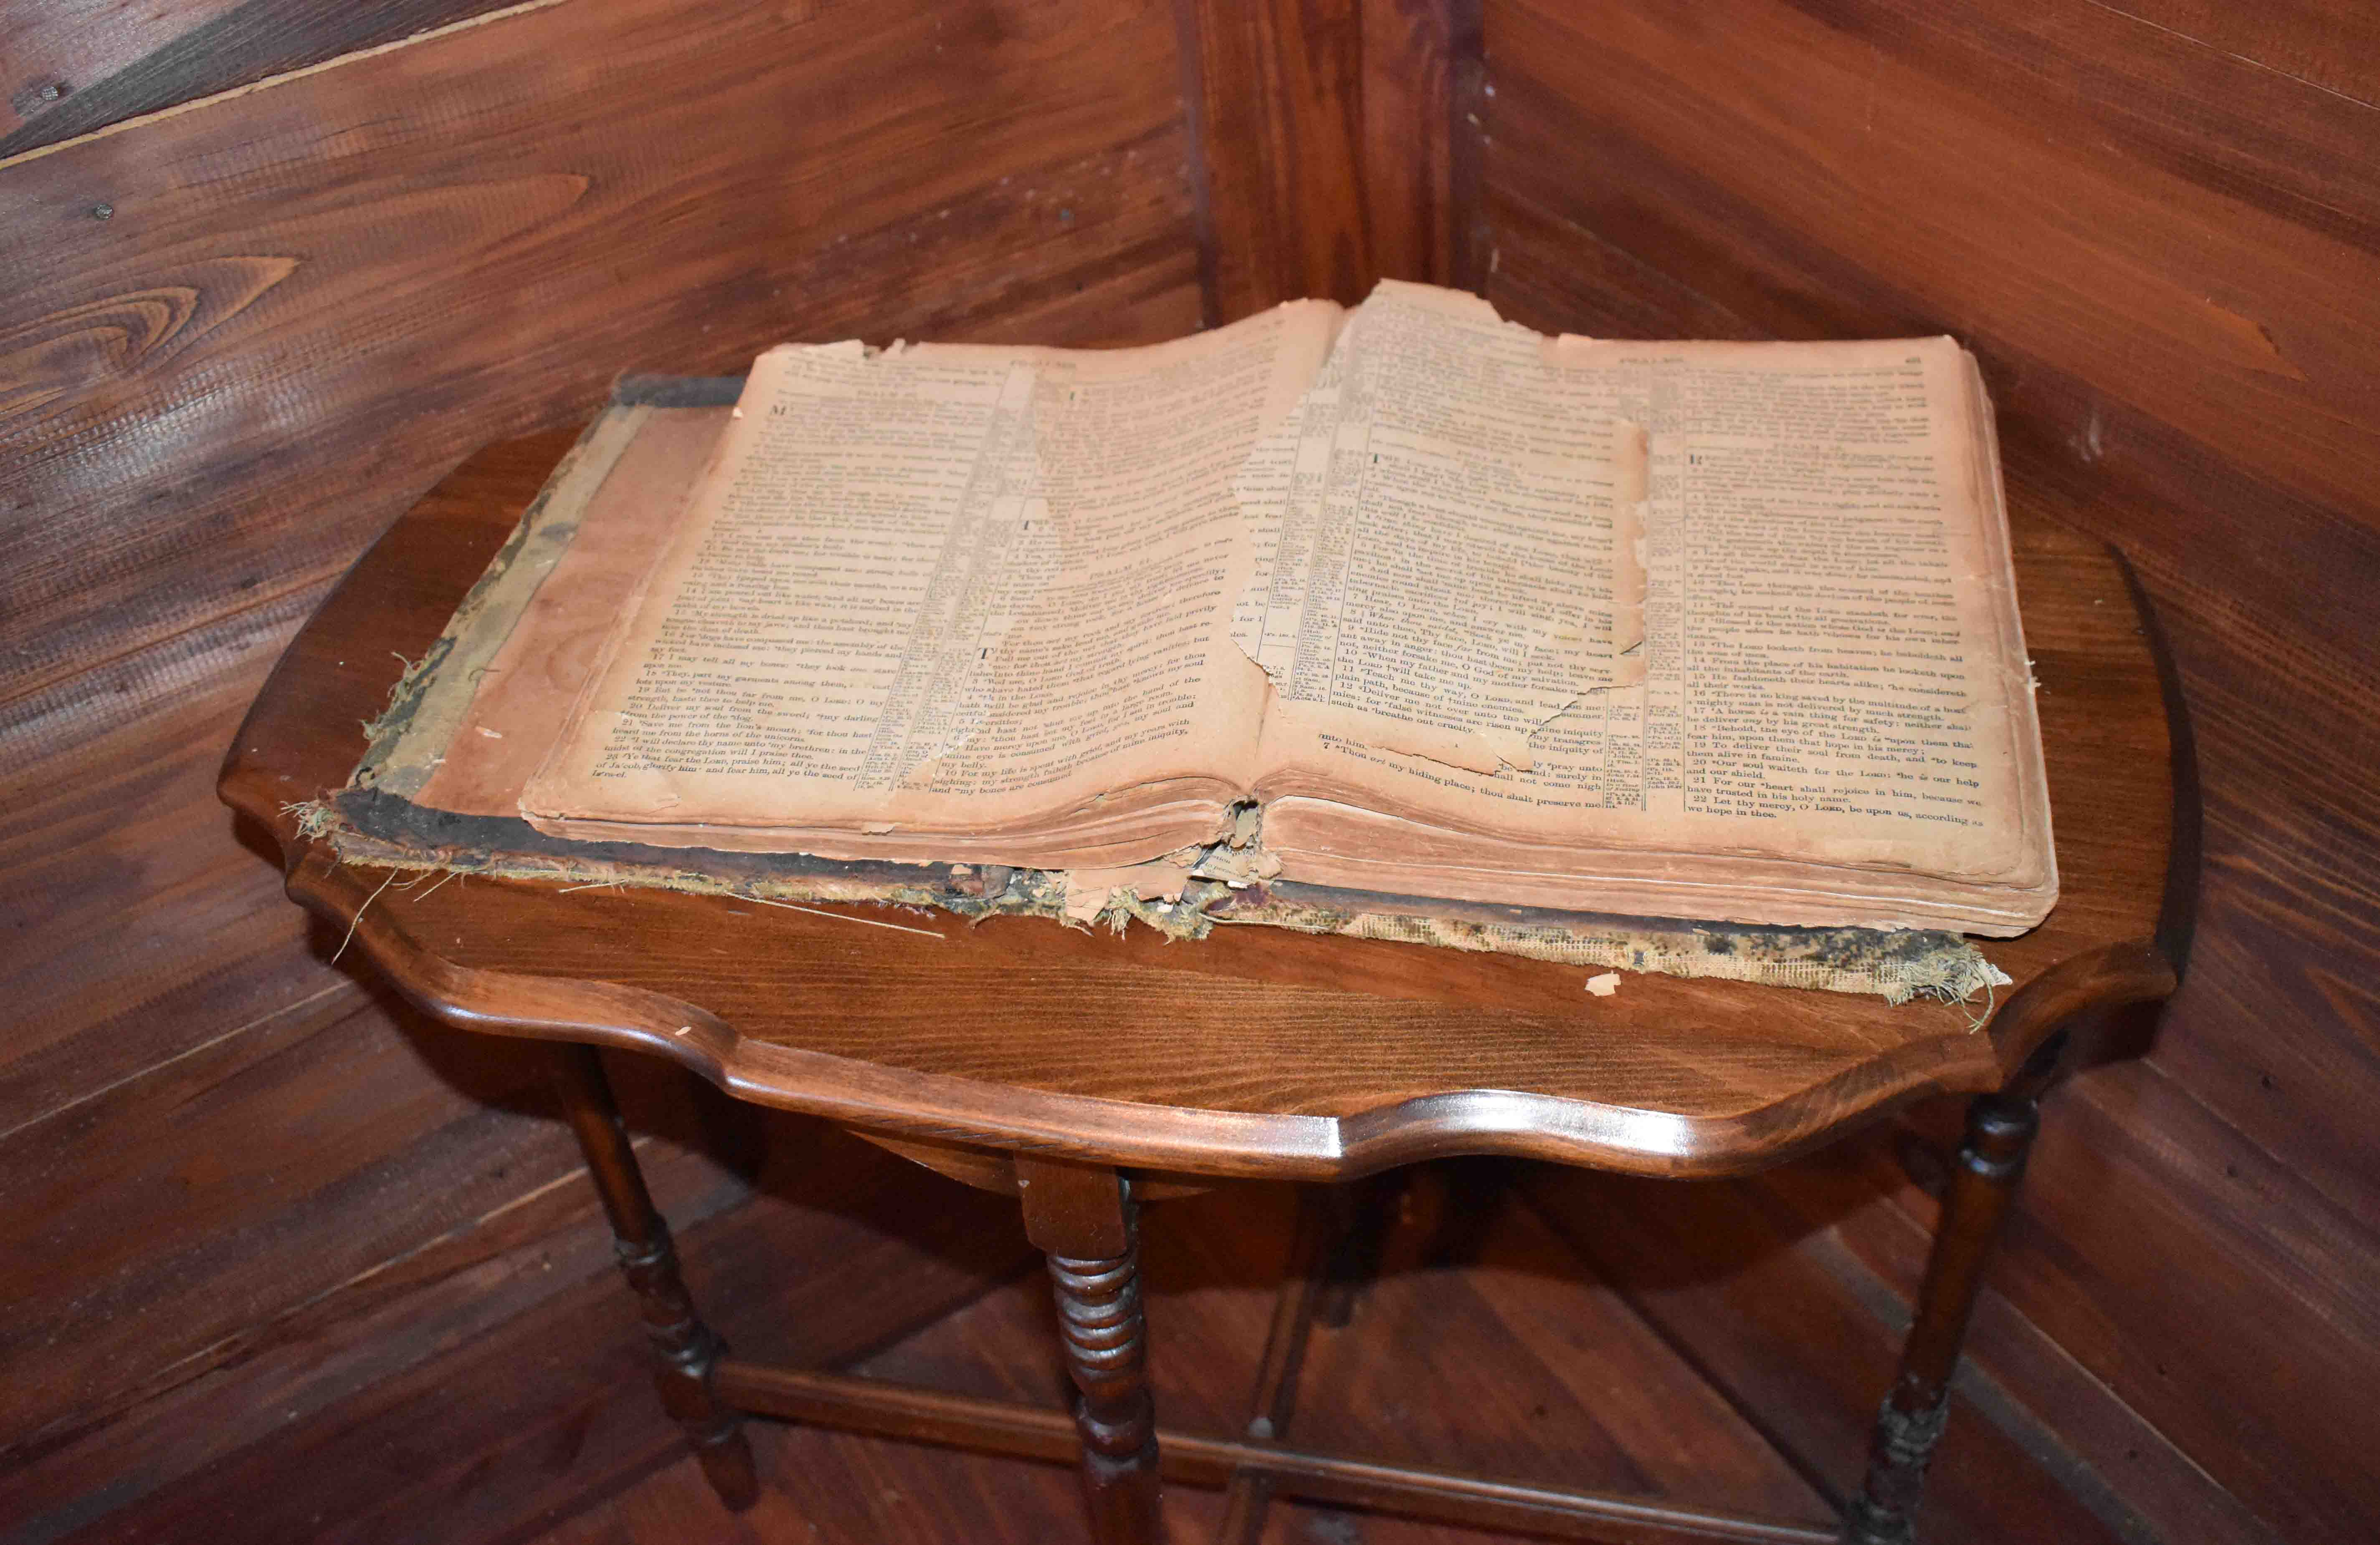 The bible in John H. Johnson's childhood home